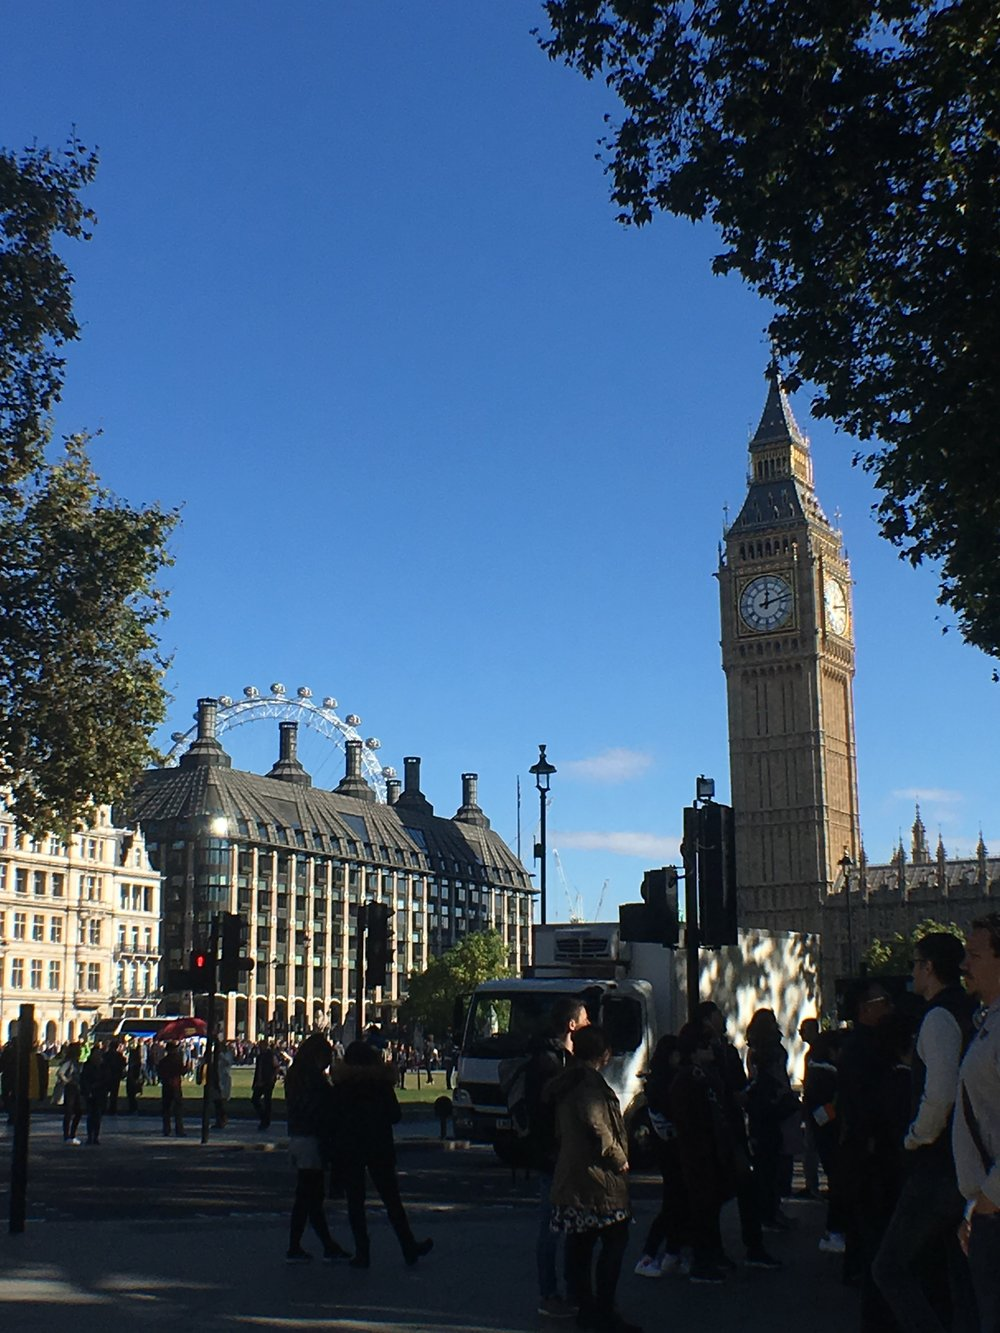 Looking at Big Ben and The London Eye from Westminster Abbey